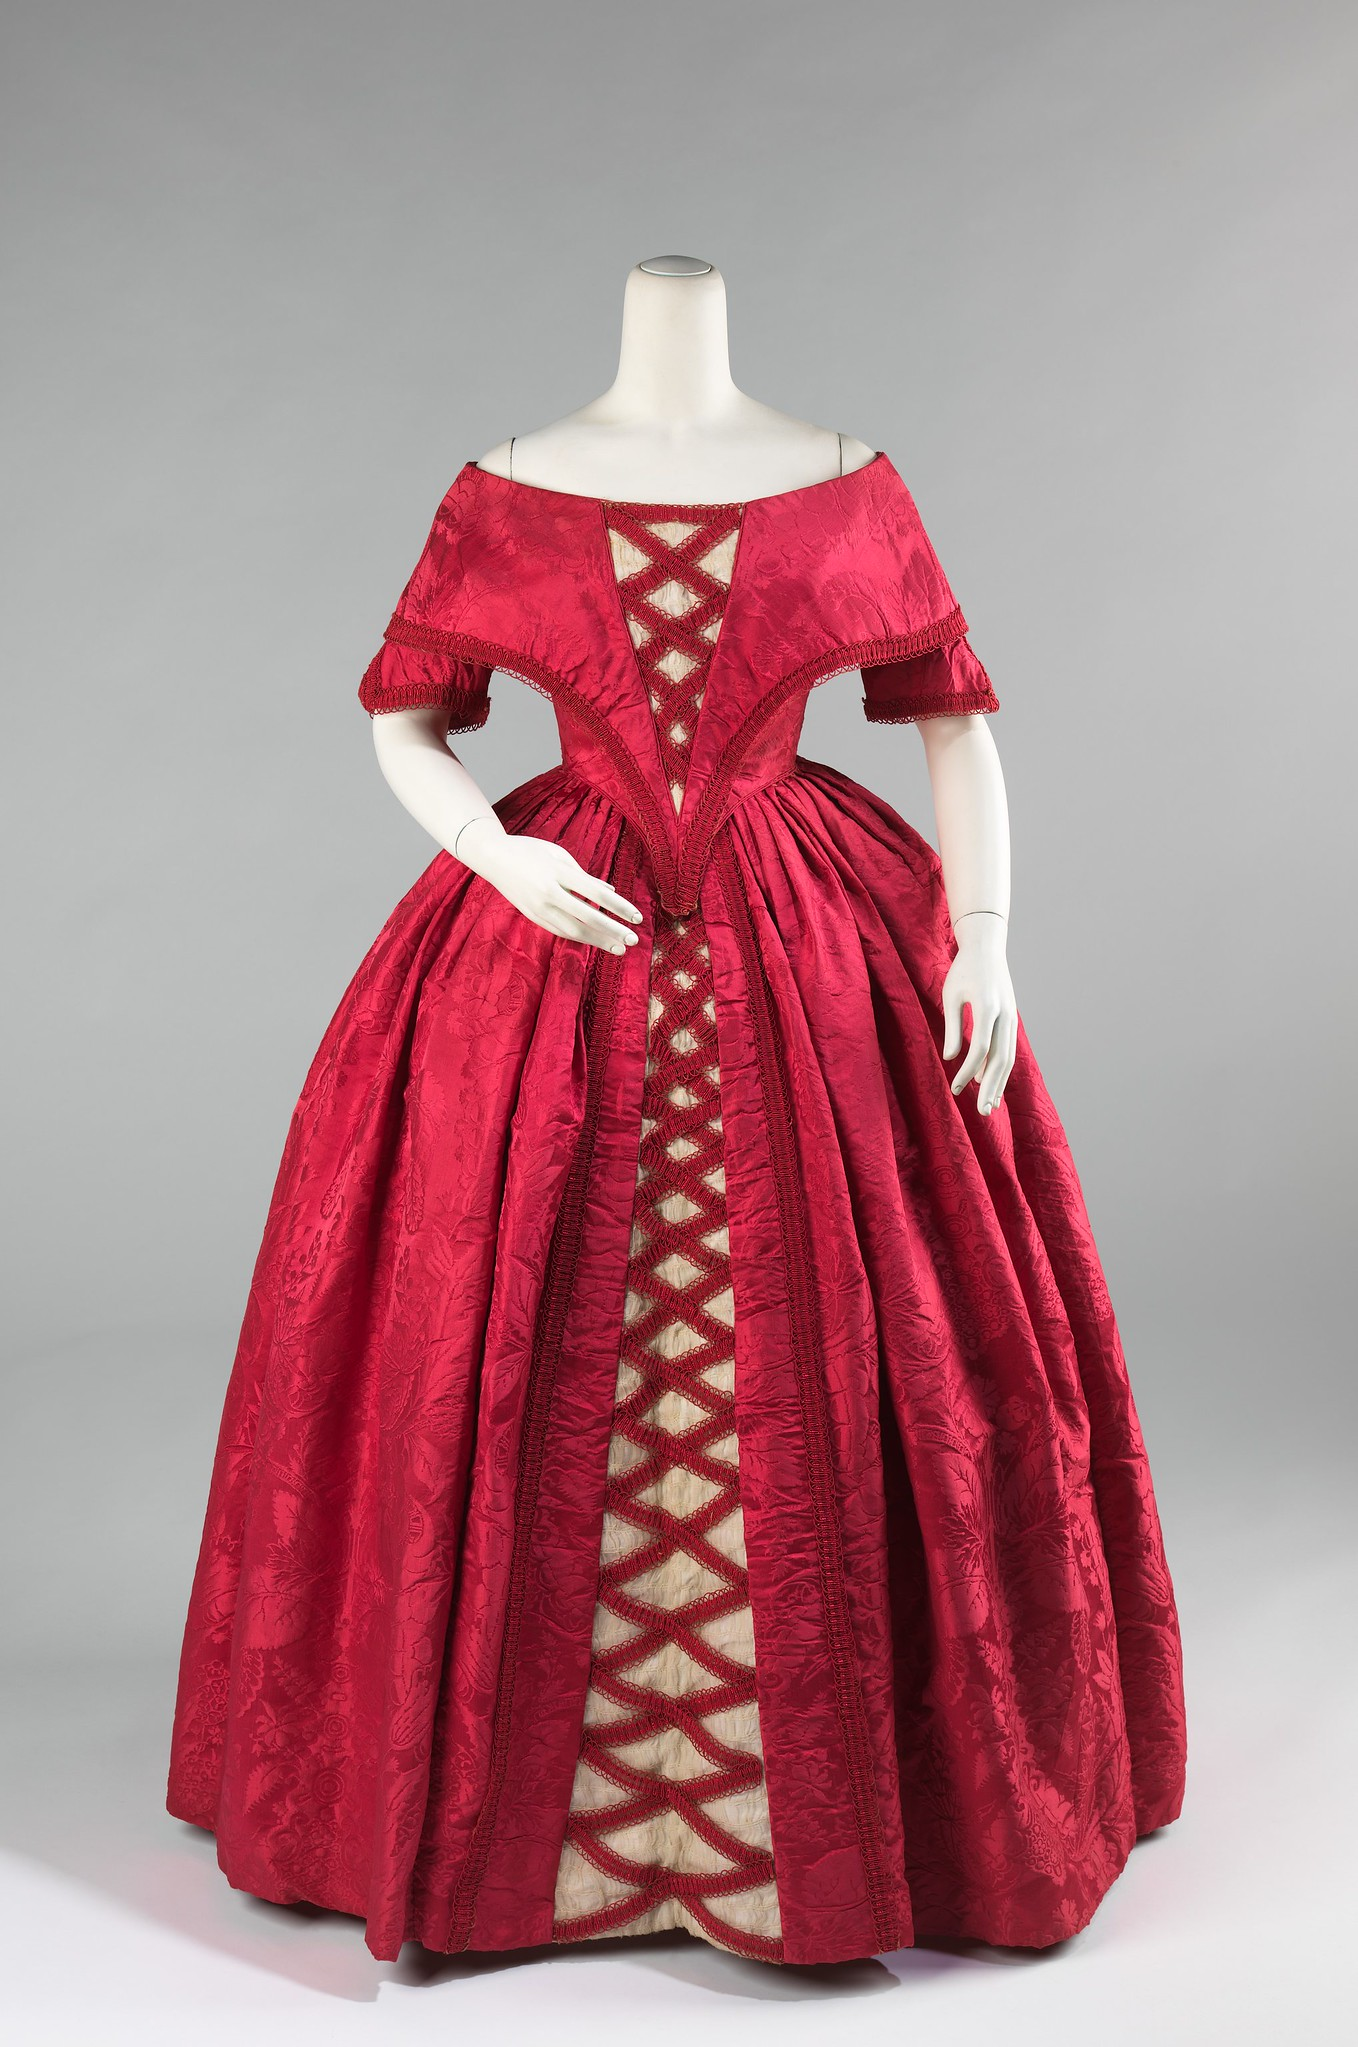 1842 Ball gown. British. Silk, cotton. metmuseum